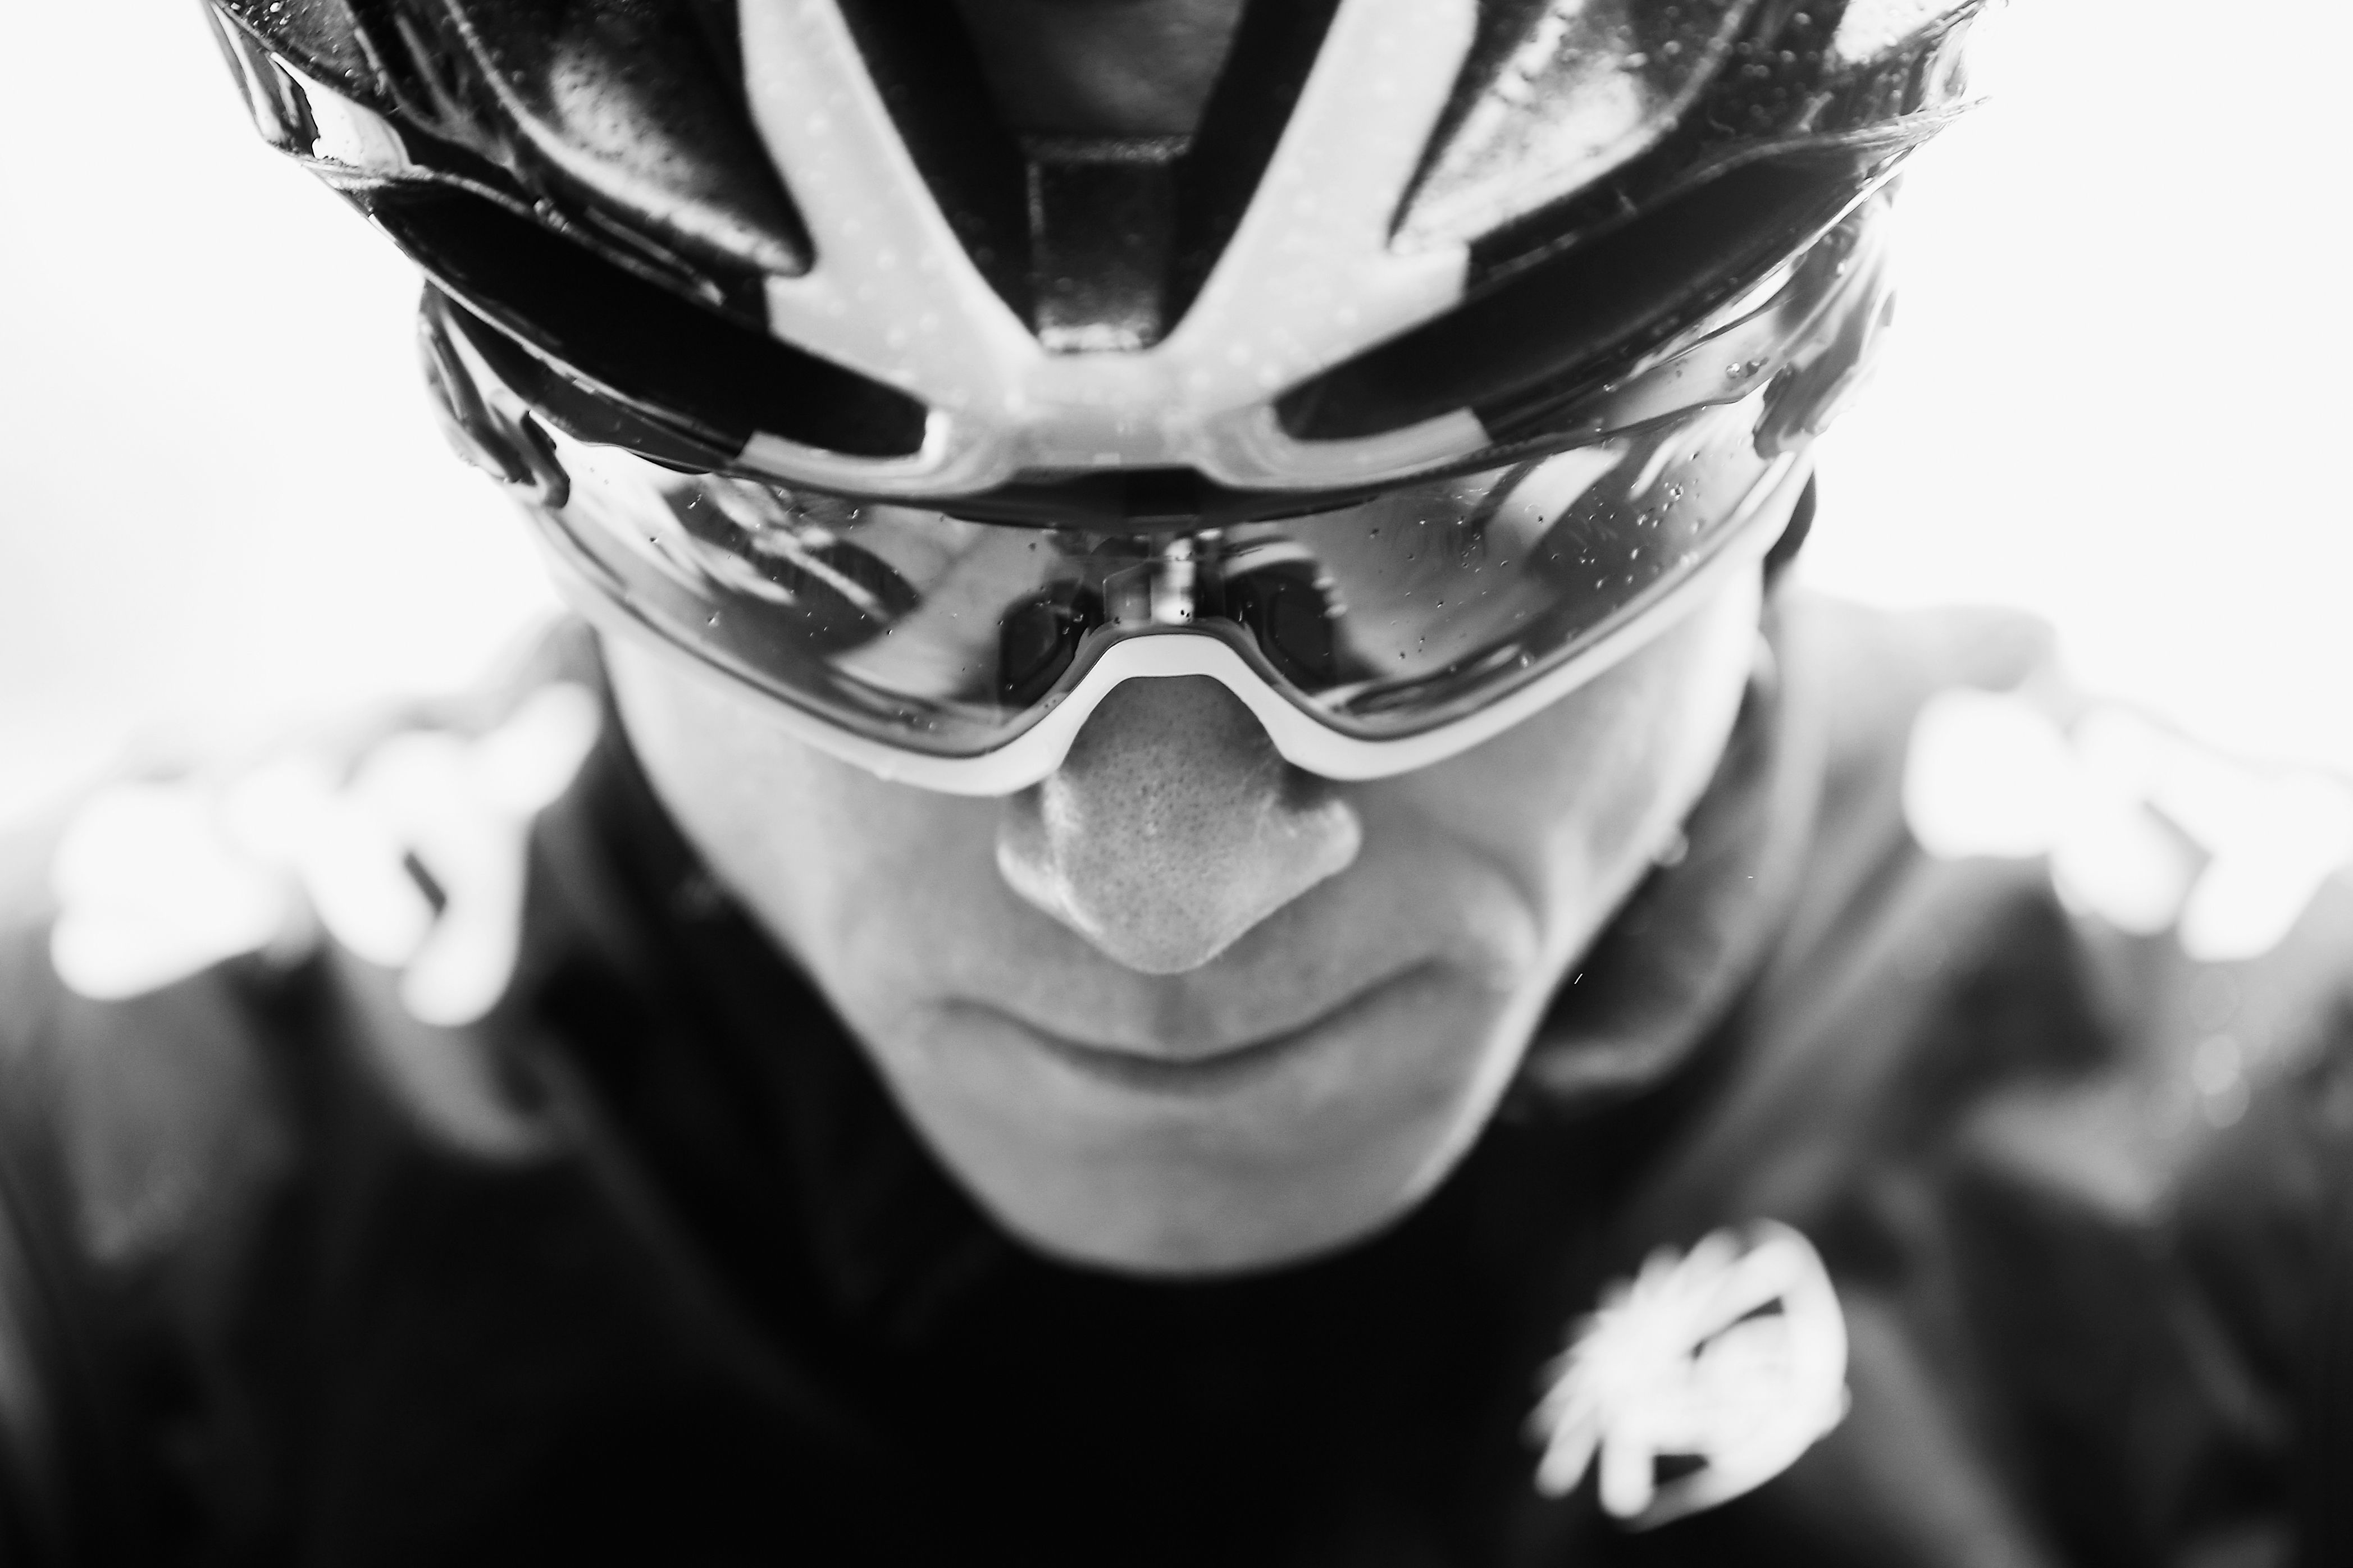 This Is the Gruelling Recovery Regime Chris Froome Went Through to Get Back to Cycling